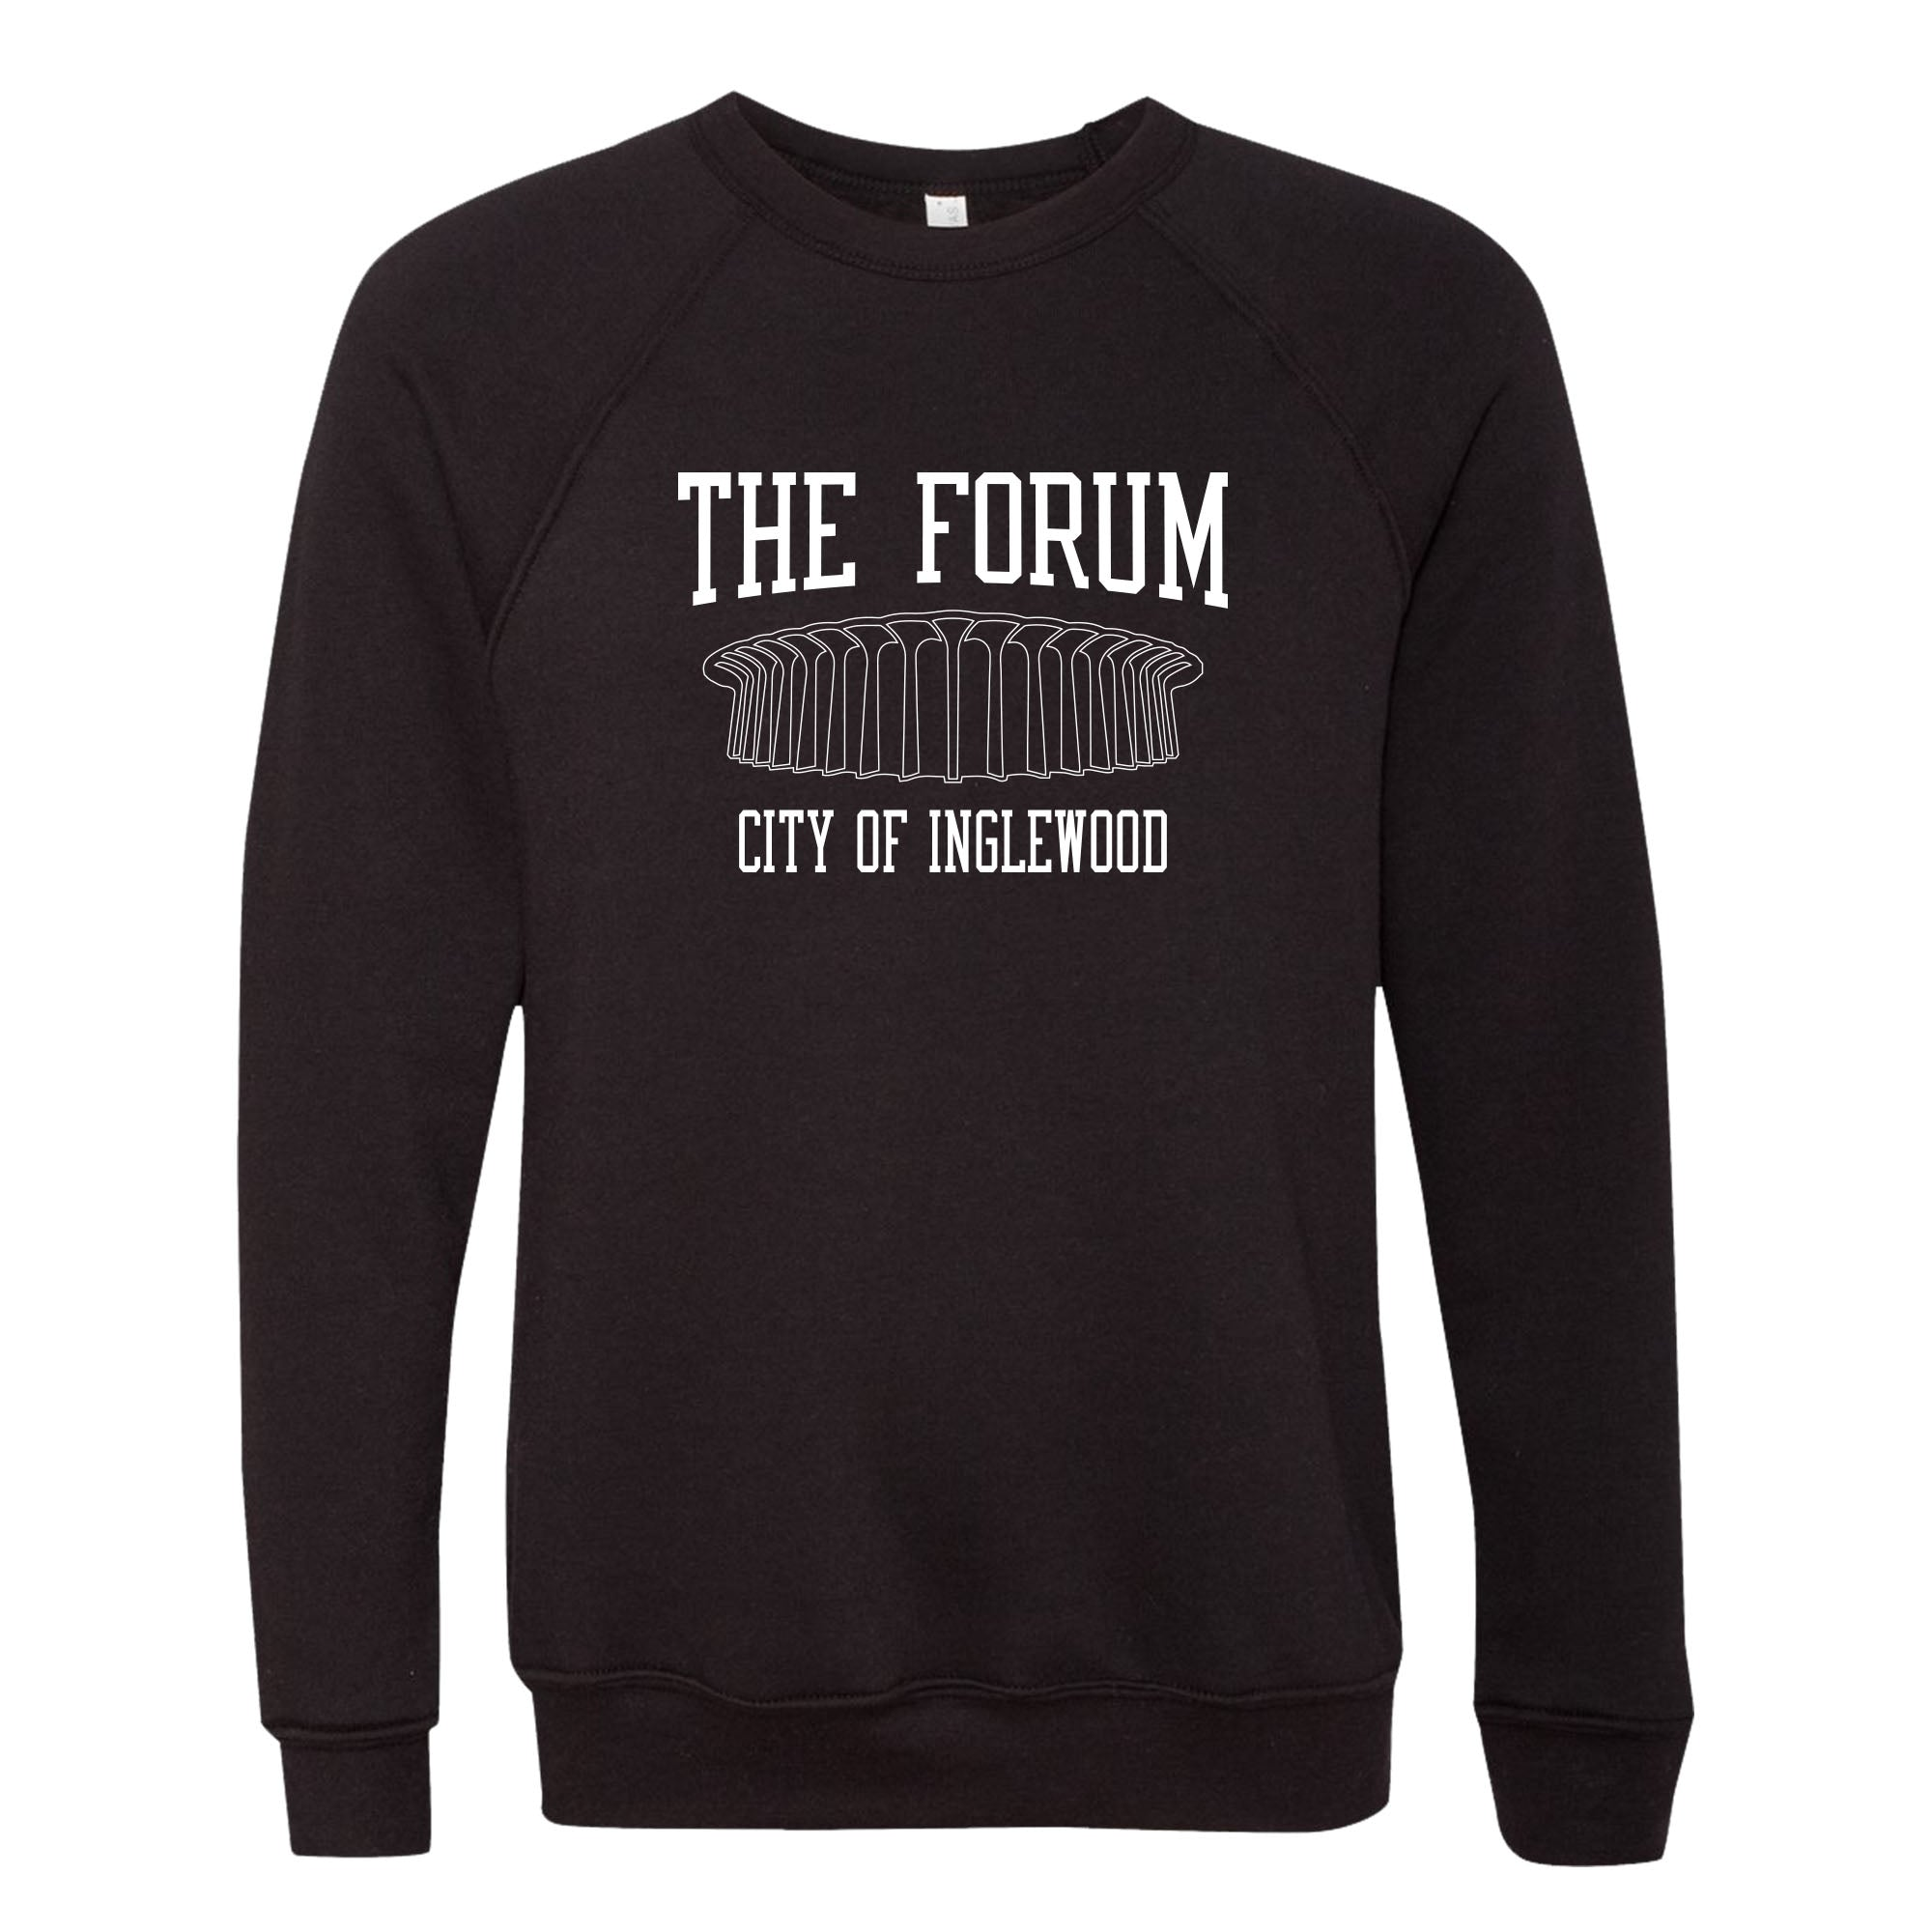 City of Inglewood Sweatshirt (Black)